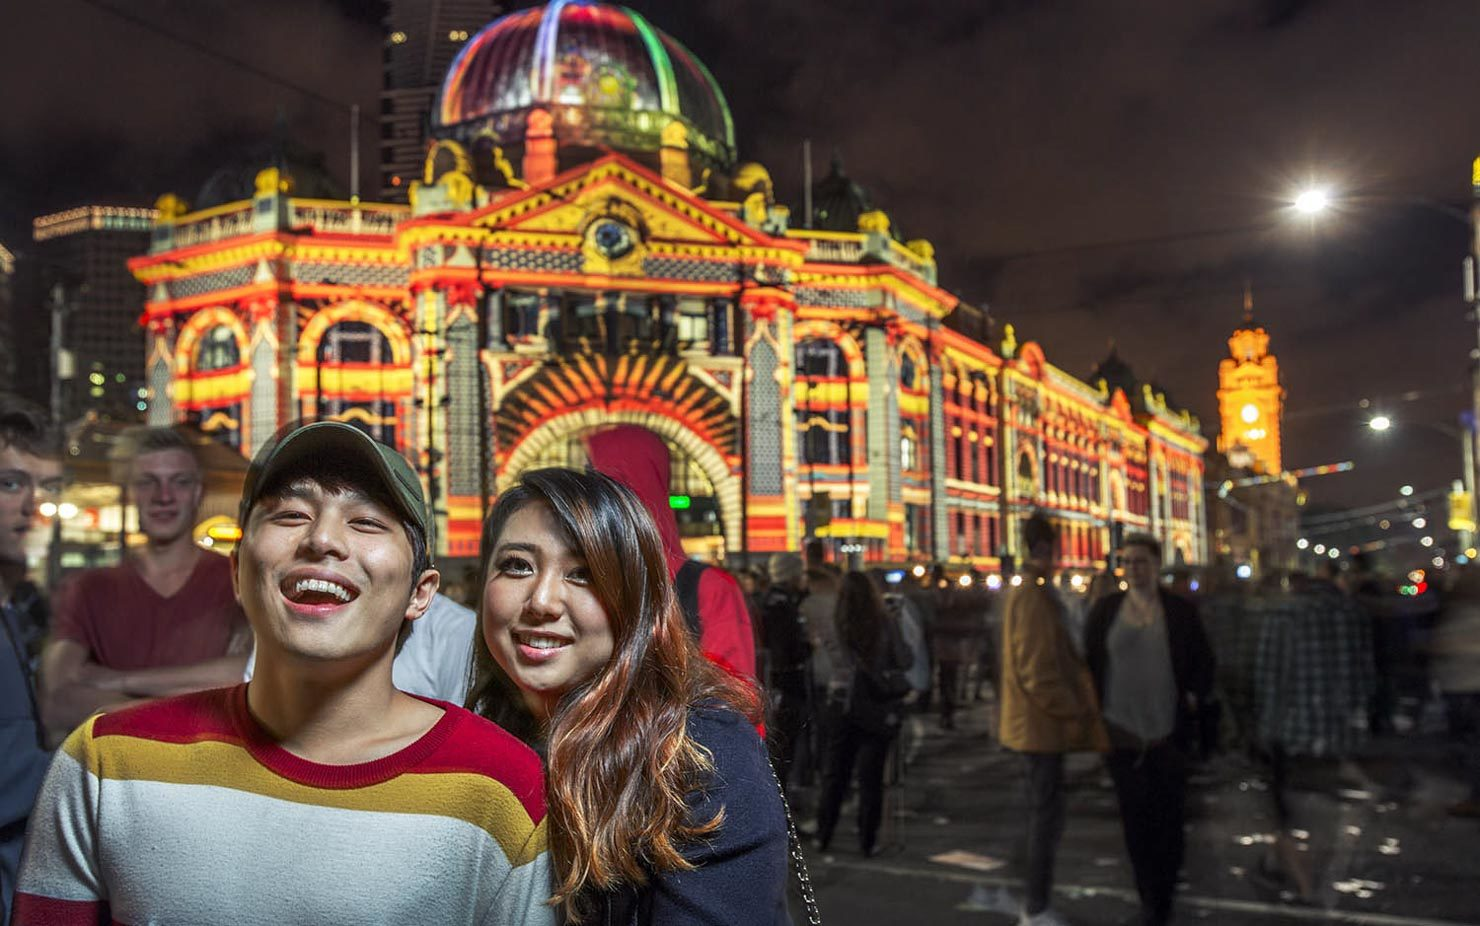 Party goers at Melbourne's Flinder Street Station